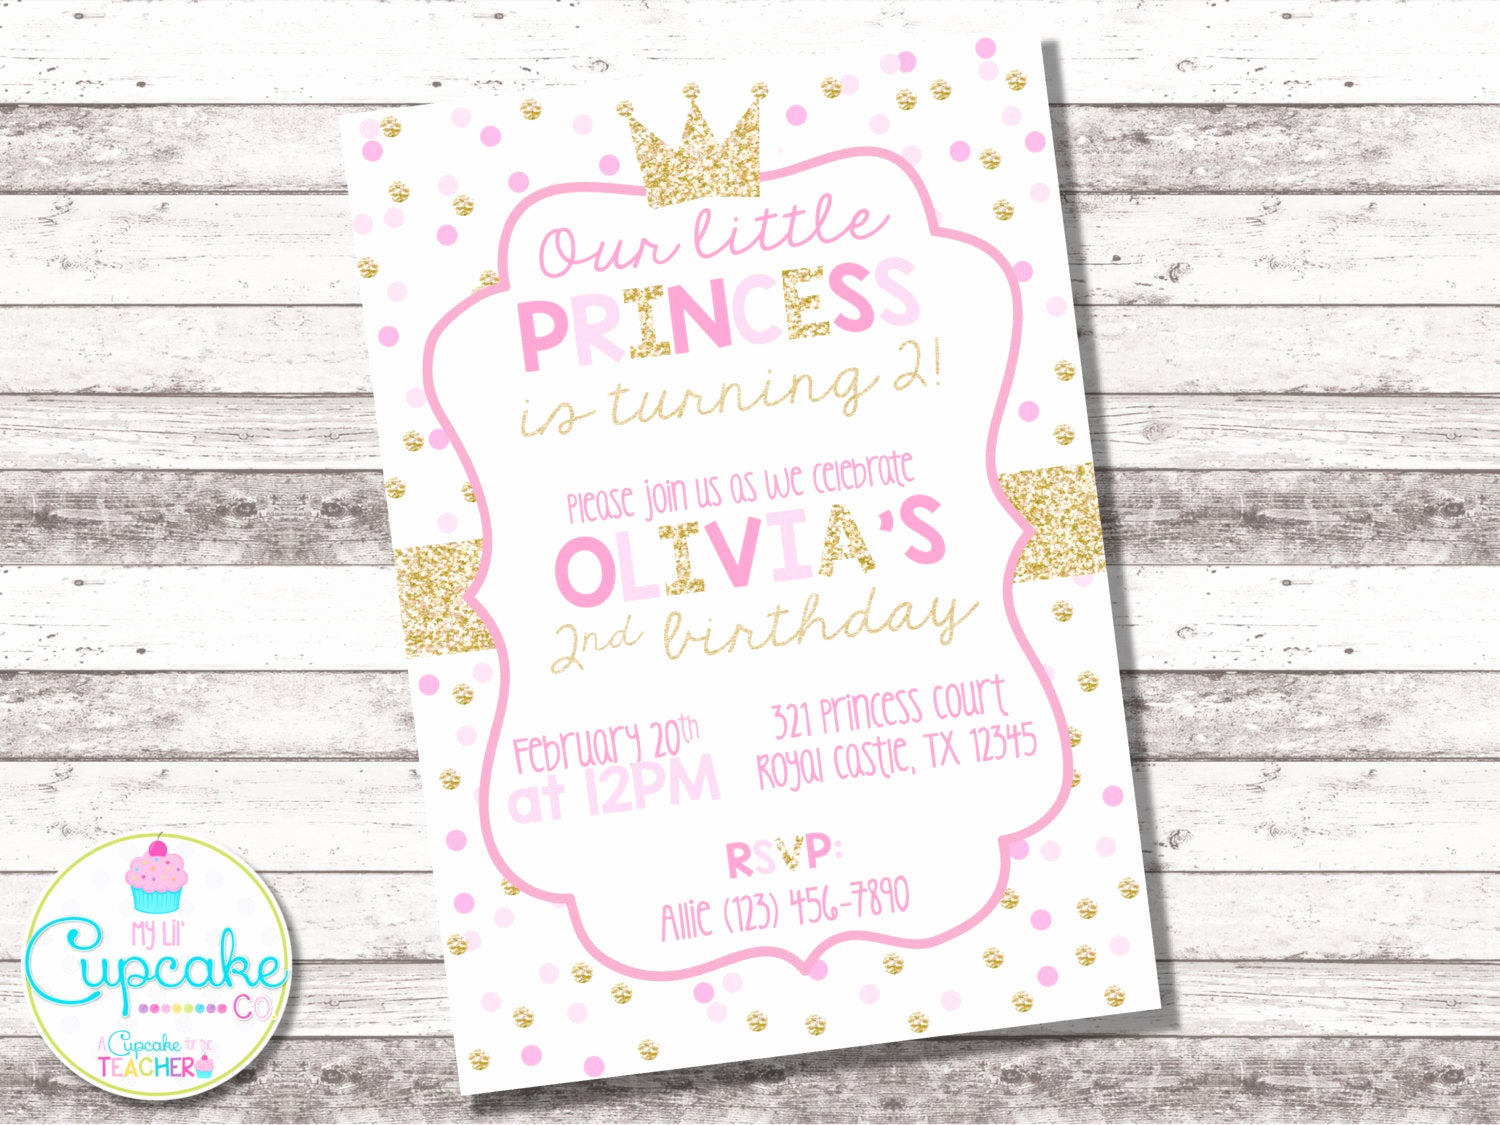 Pink and Gold Birthday Invitation Lovely Pink and Gold Princess Birthday Invitation Pink Gold